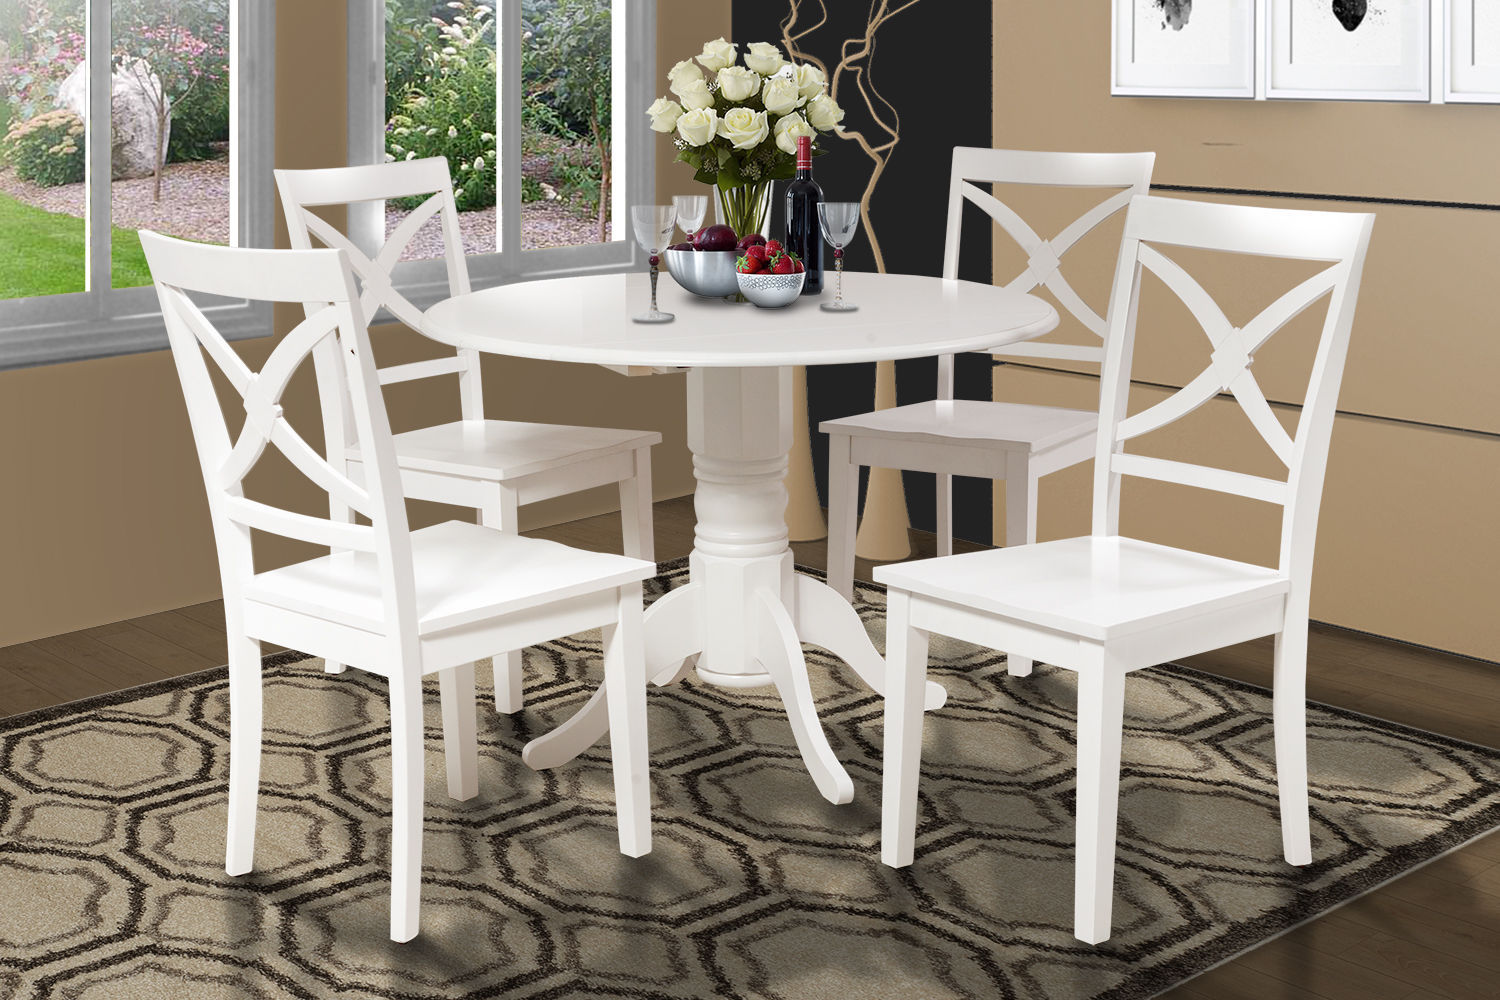 5 PIECE DINETTE KITCHEN TABLE SET WITH 4 PLAIN WOOD SEAT CHAIRS IN WHITE